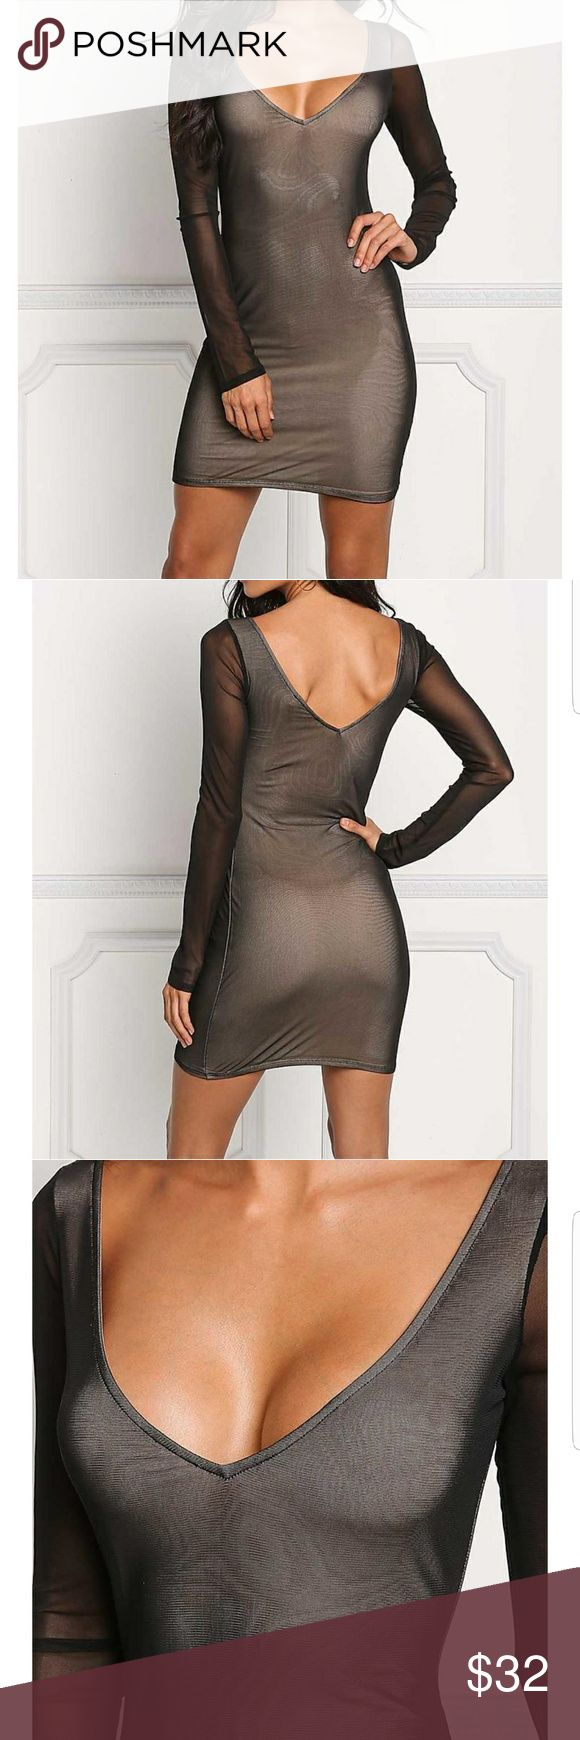 """Aniston"" Mesh Plunge Bodycon Dress Go out in style in this super sexy bodycon dress that features a soft to the touch mesh bodice solid all throughout. Has a plunging neckline and long sleeves. Has nude lining attached to the bodice with a form hugging silhouette and above the knee length.  Model is 5'6"" with a 32"" bust, 23"" waist, and 36"" hips. Wearing size small. Blush Rose Boutique Dresses Mini"